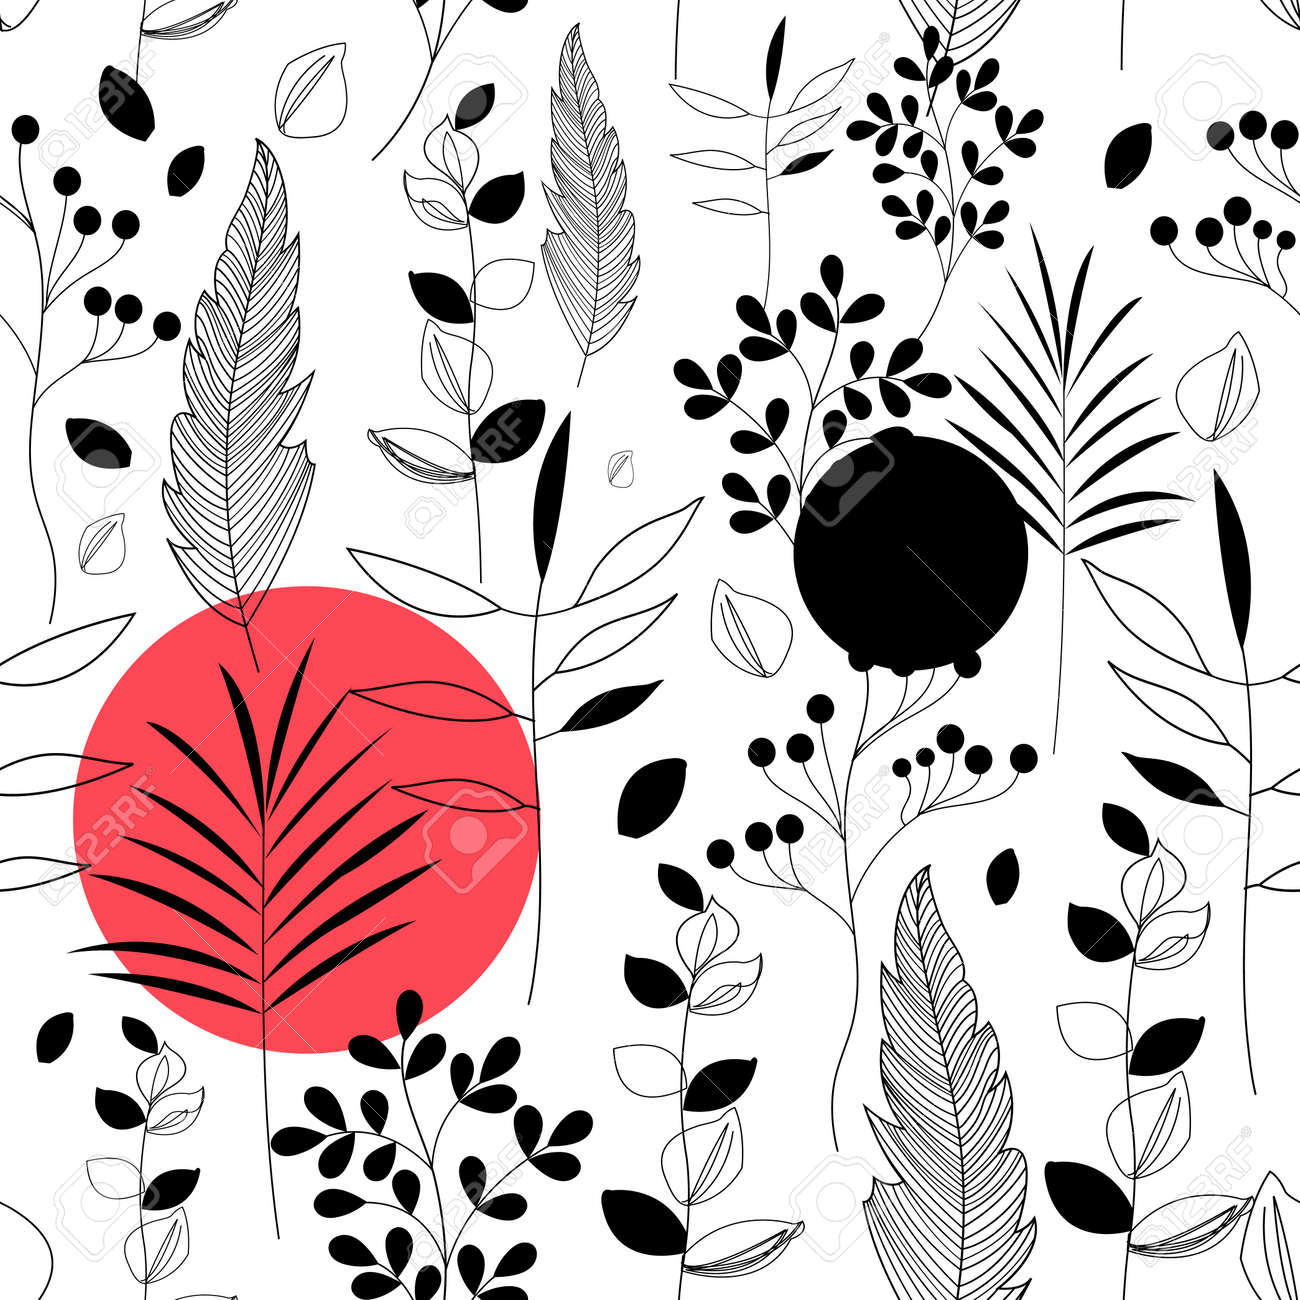 Seamless floral pattern of plants and flowers - 166465861